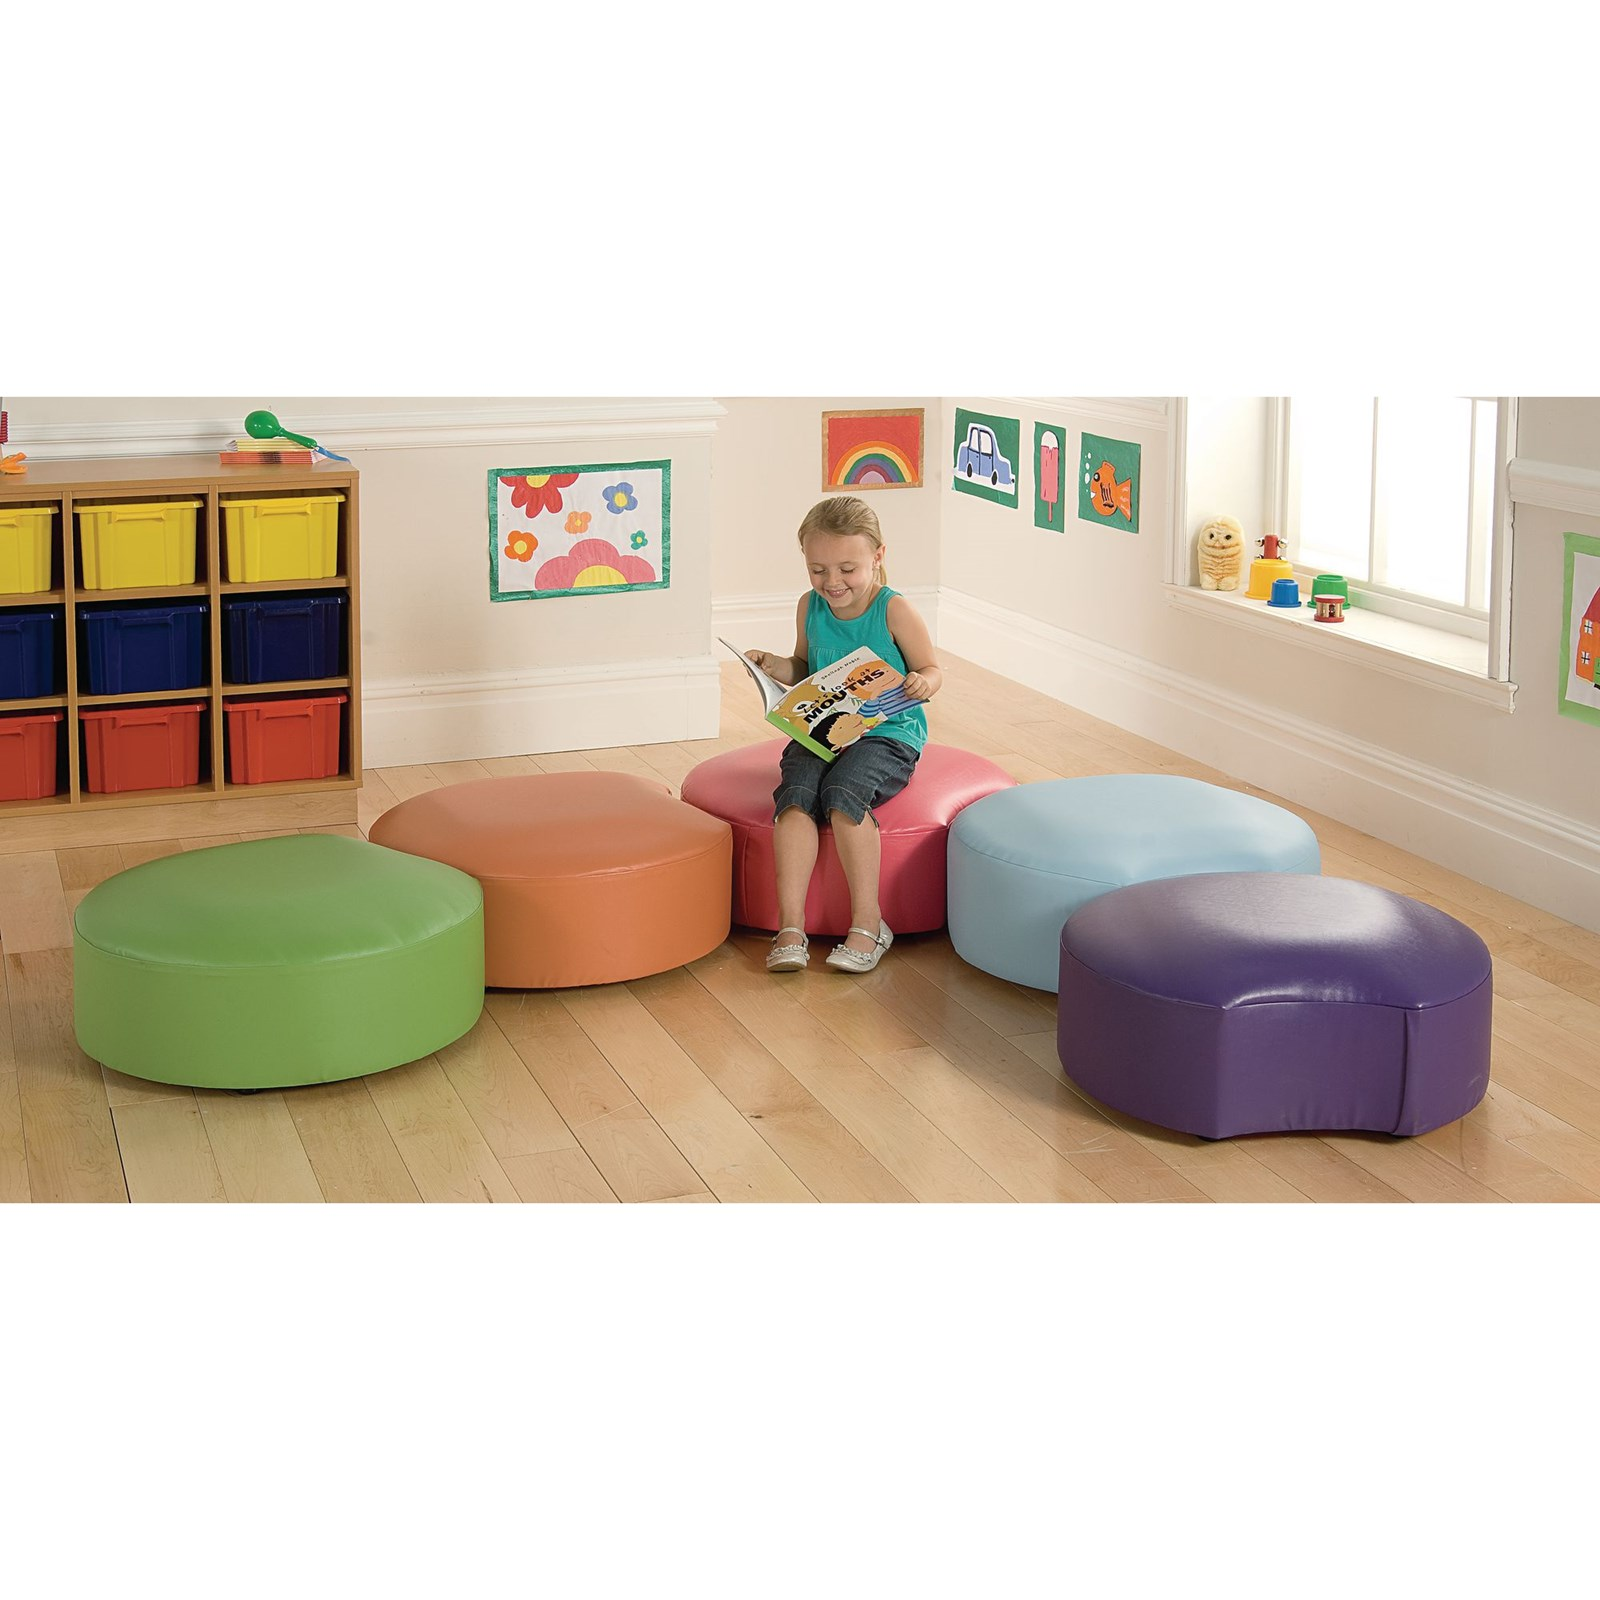 Snuggle Seating - Brights Pack of 5